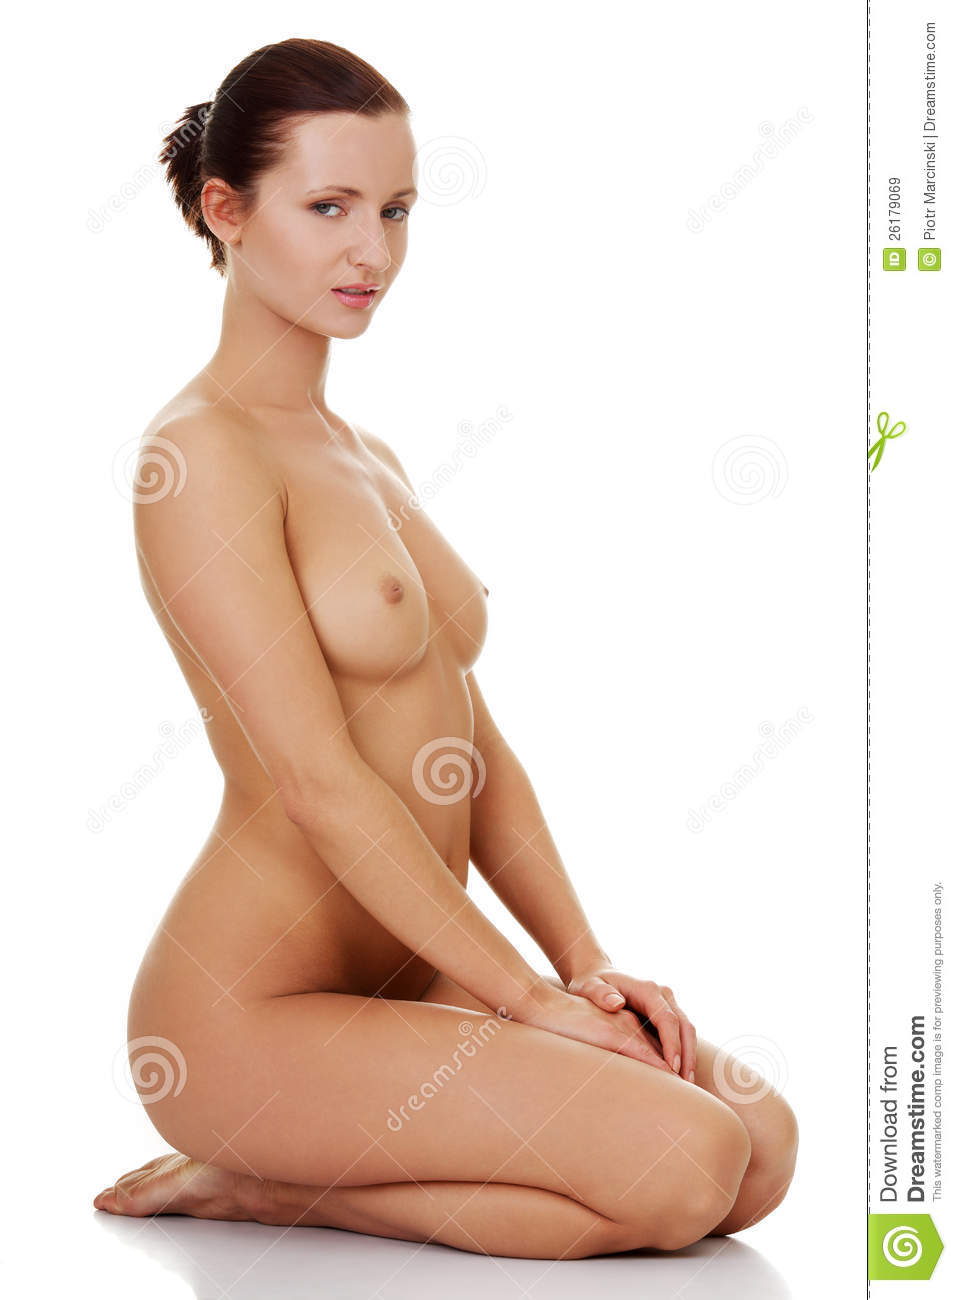 naked woman sitting